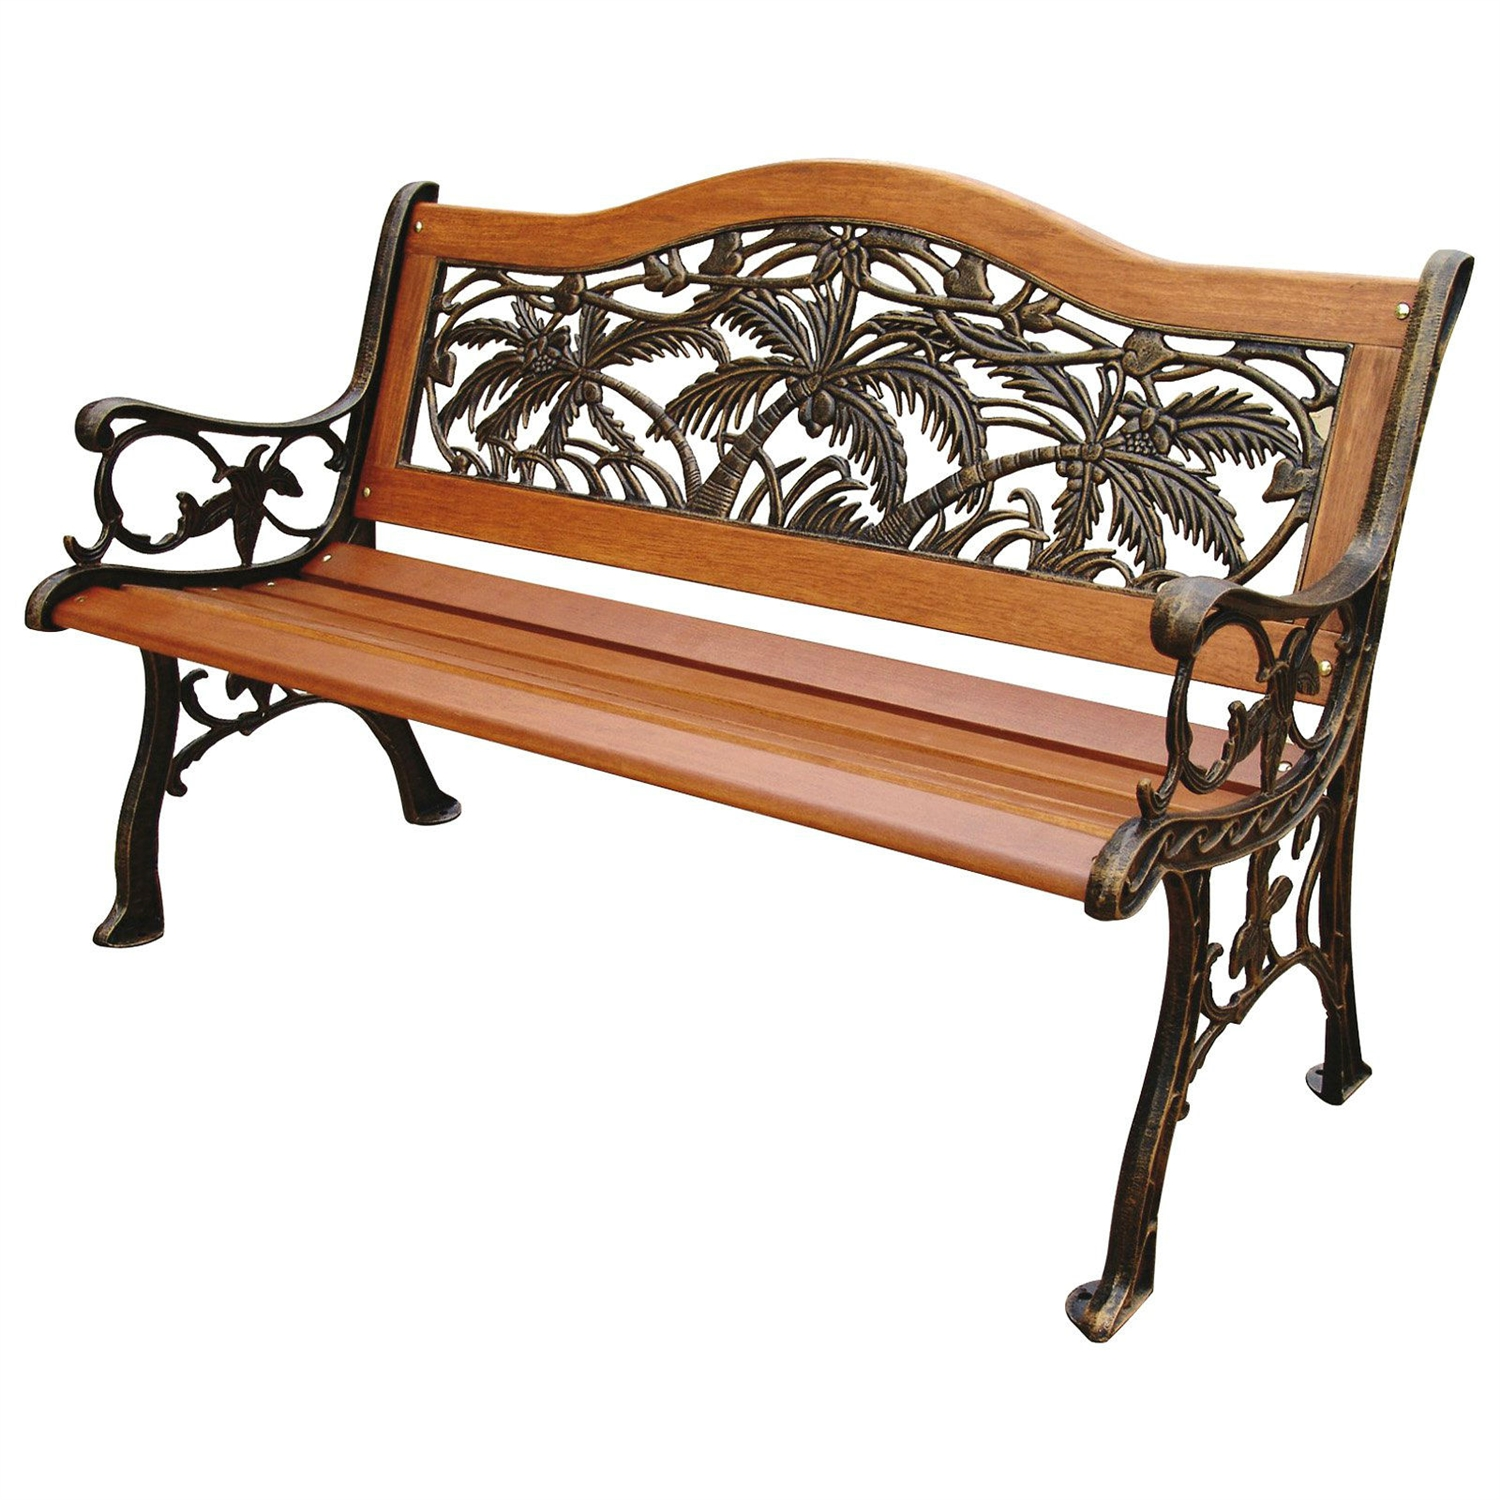 classic outdoor 4 ft wood metal garden bench with bronze palm tree design. Black Bedroom Furniture Sets. Home Design Ideas